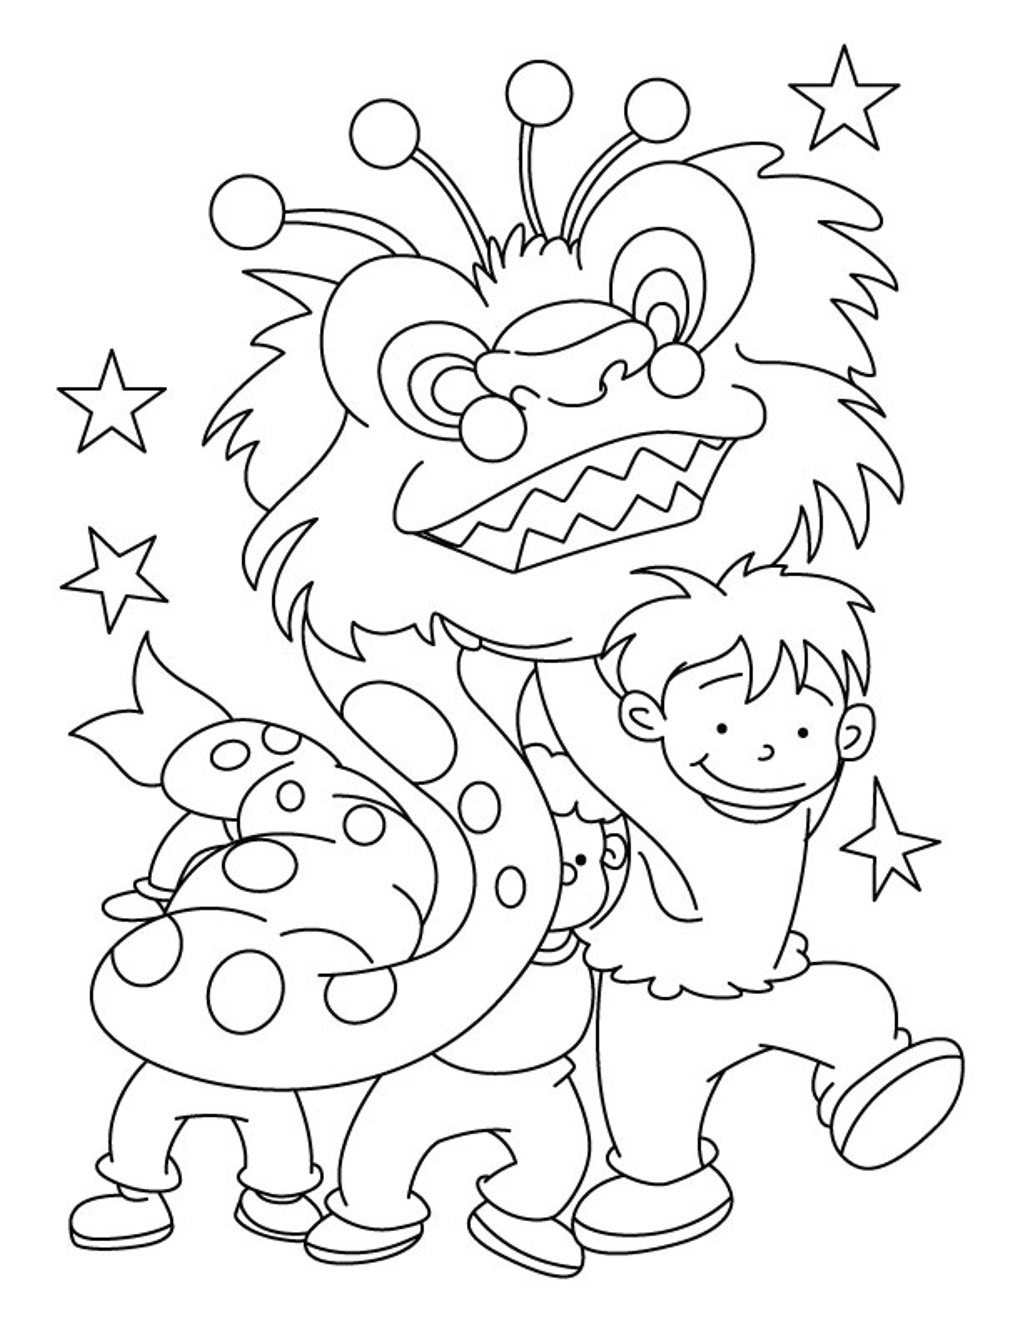 chinese coloring chinese coloring pages to download and print for free chinese coloring 1 1